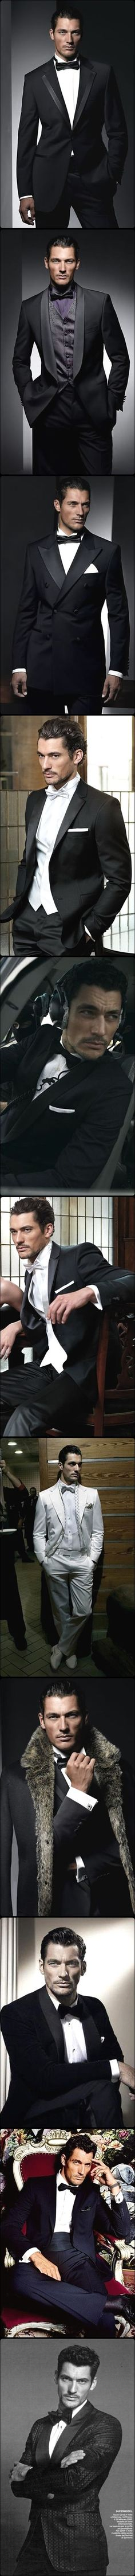 MODEL DAVID GANDY Black tie attire